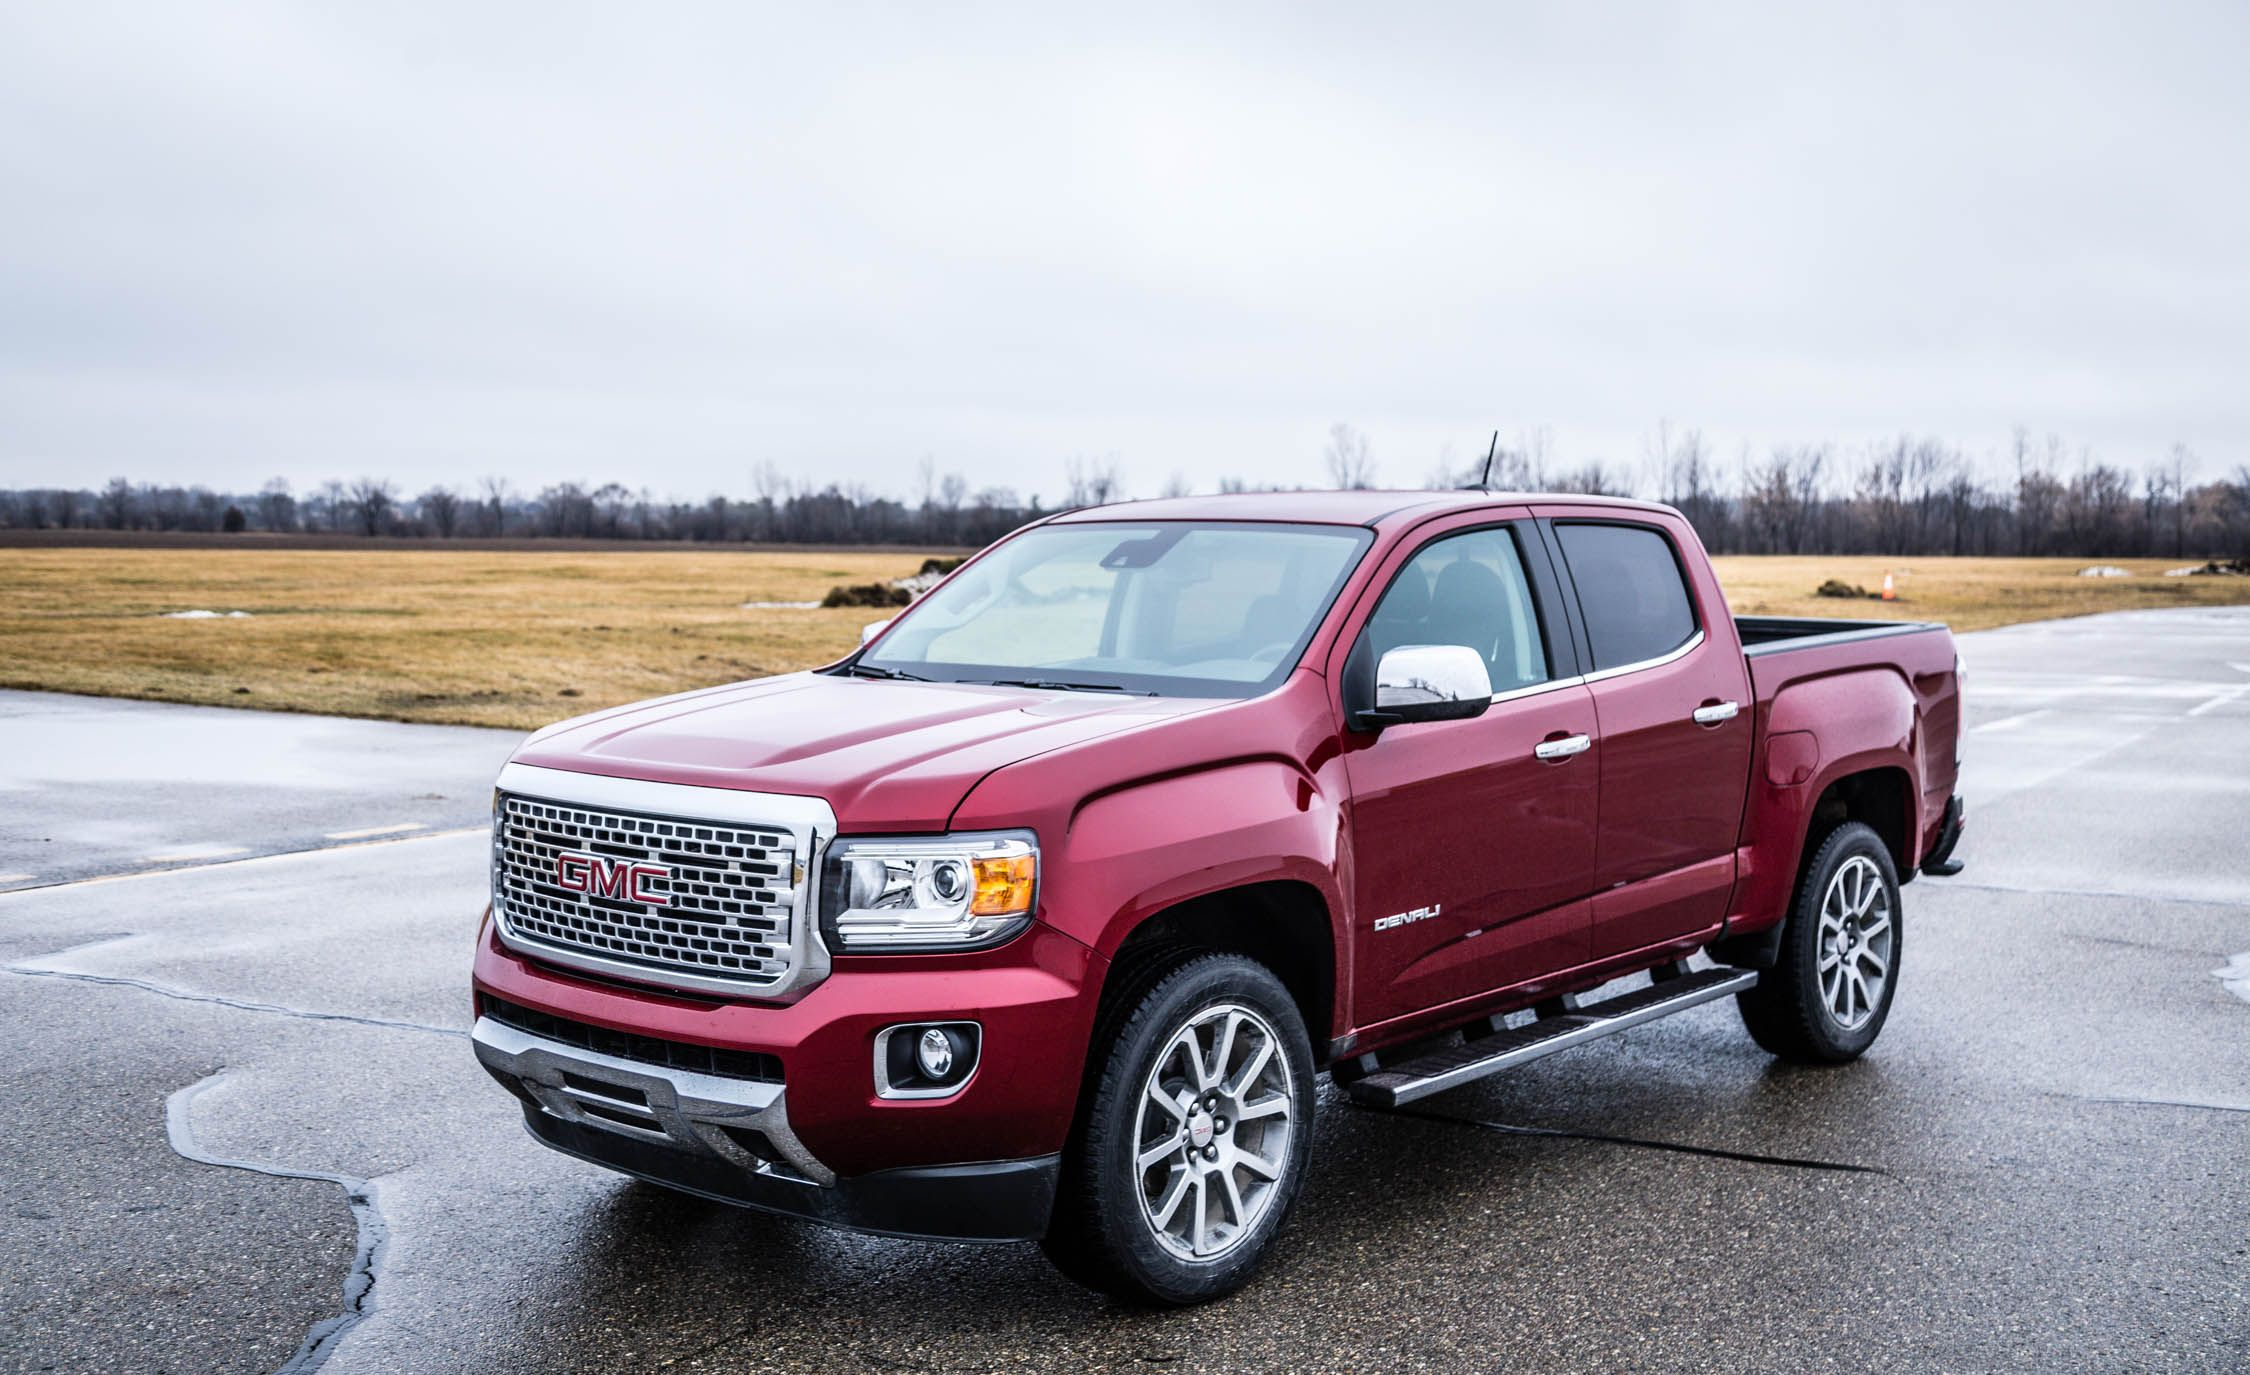 2017 Gmc Canyon V 6 8 Speed Automatic 4x4 Crew Cab Tested